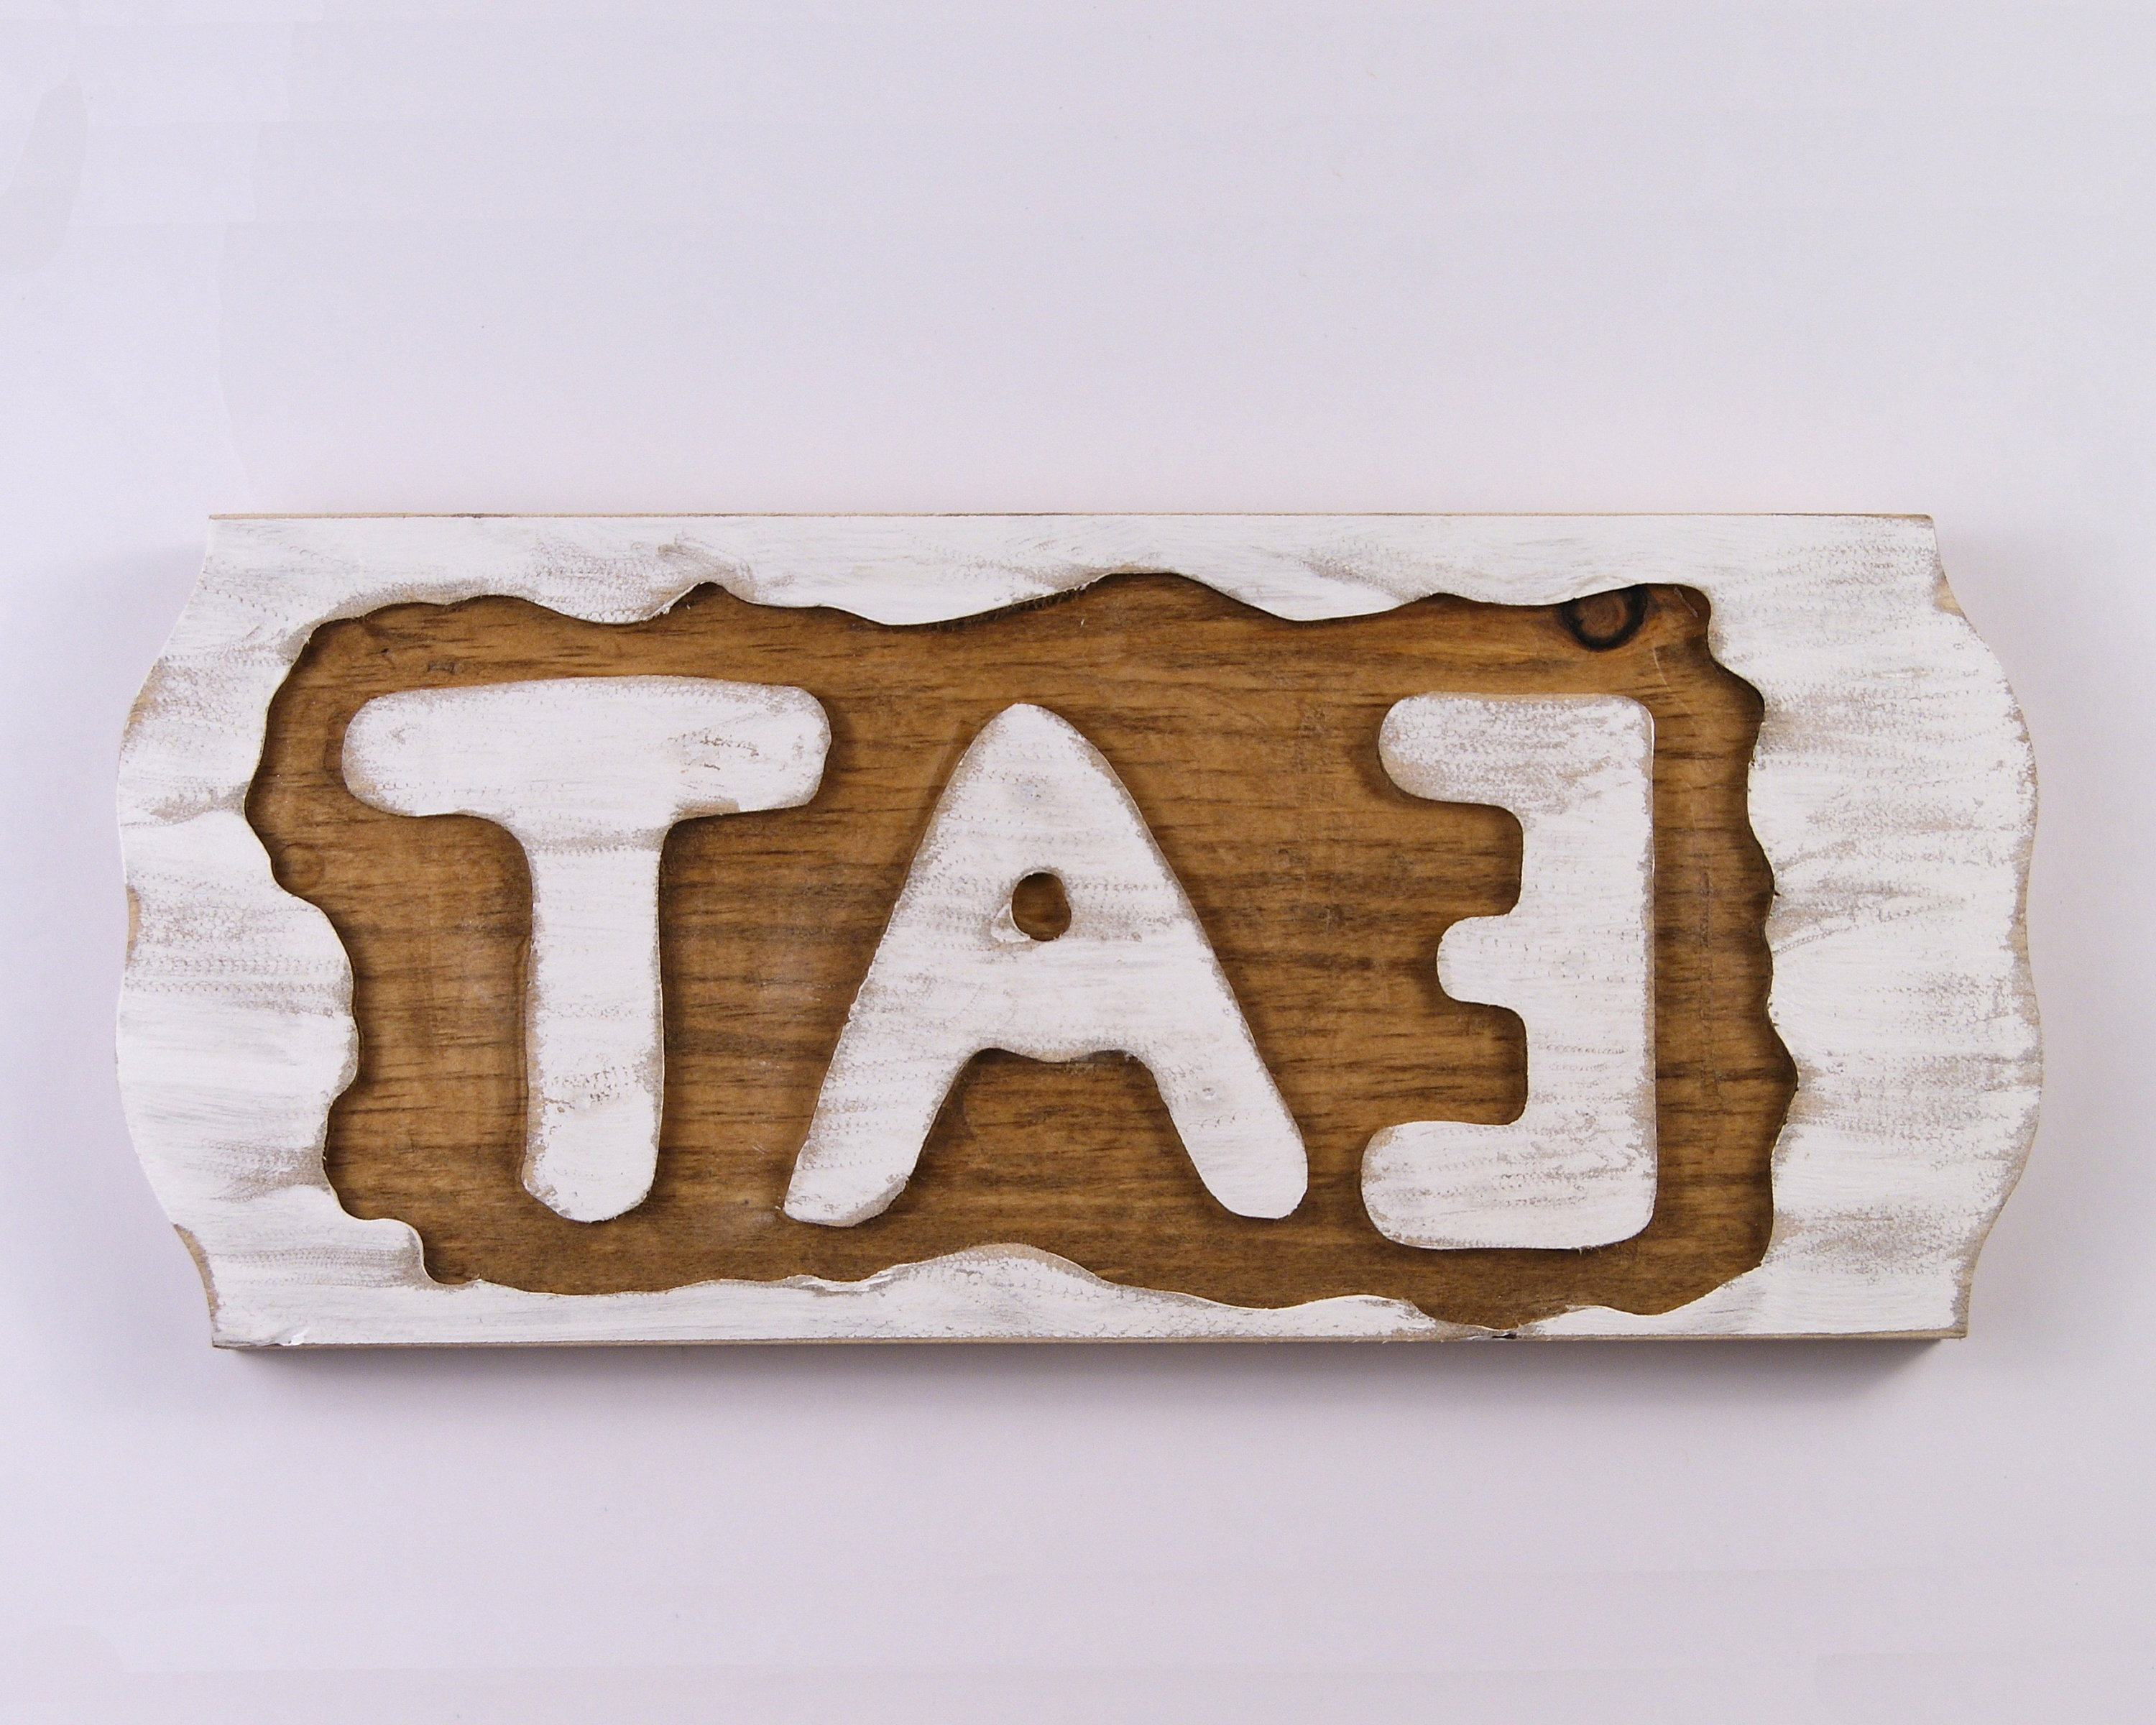 Popular Eat Sign, Rustic White Wall Hanging, Reclaimed Wood Wall Hanging Within Eat Rustic Farmhouse Wood Wall Decor (View 17 of 20)